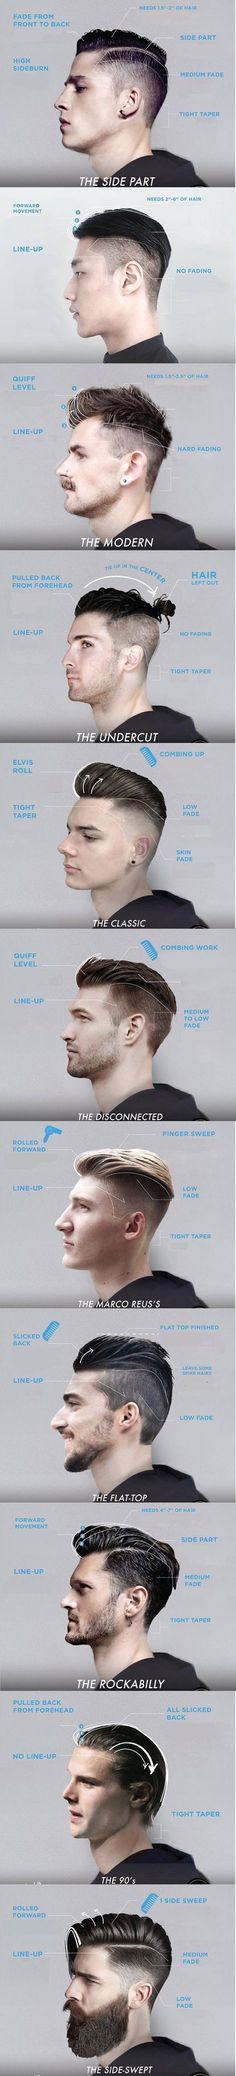 Source of this article http://www.lifehack.org/350299/trendy-hair-styling-for-men-with-undercut-2016-infographic?ref=ppt9 #Coolmen'shairstyles